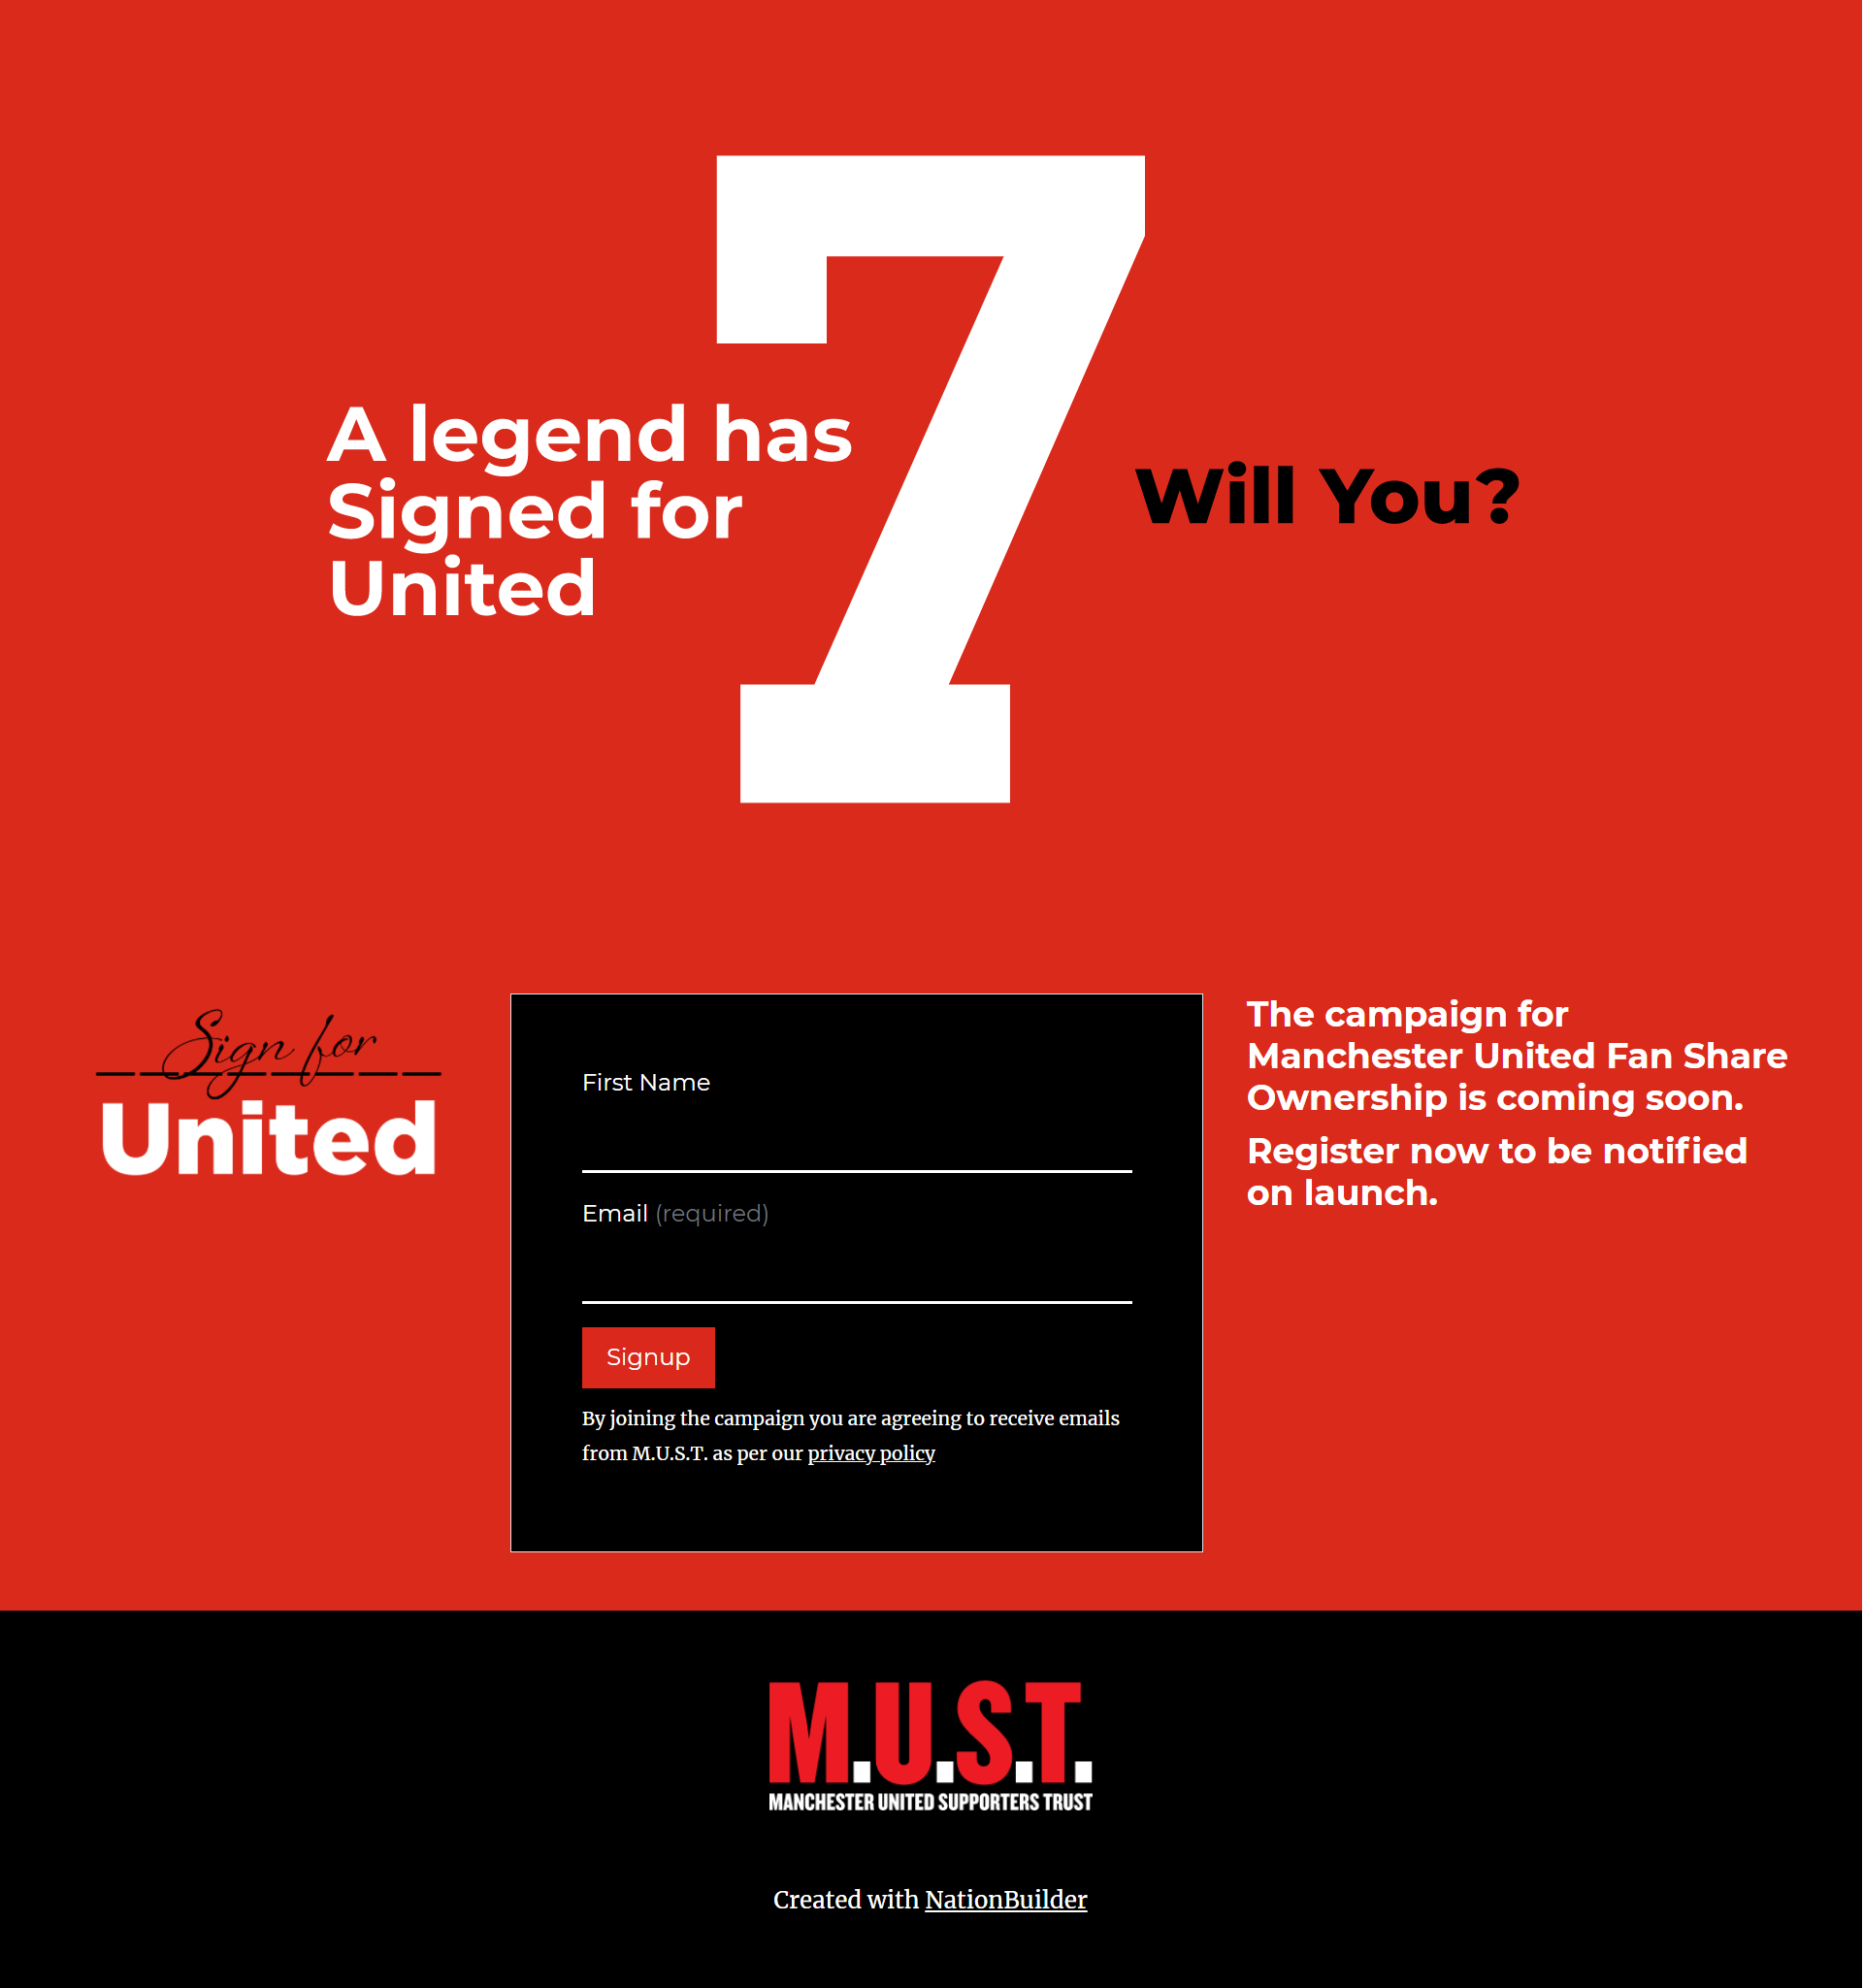 Sign For United due to launch soon - pre-register here